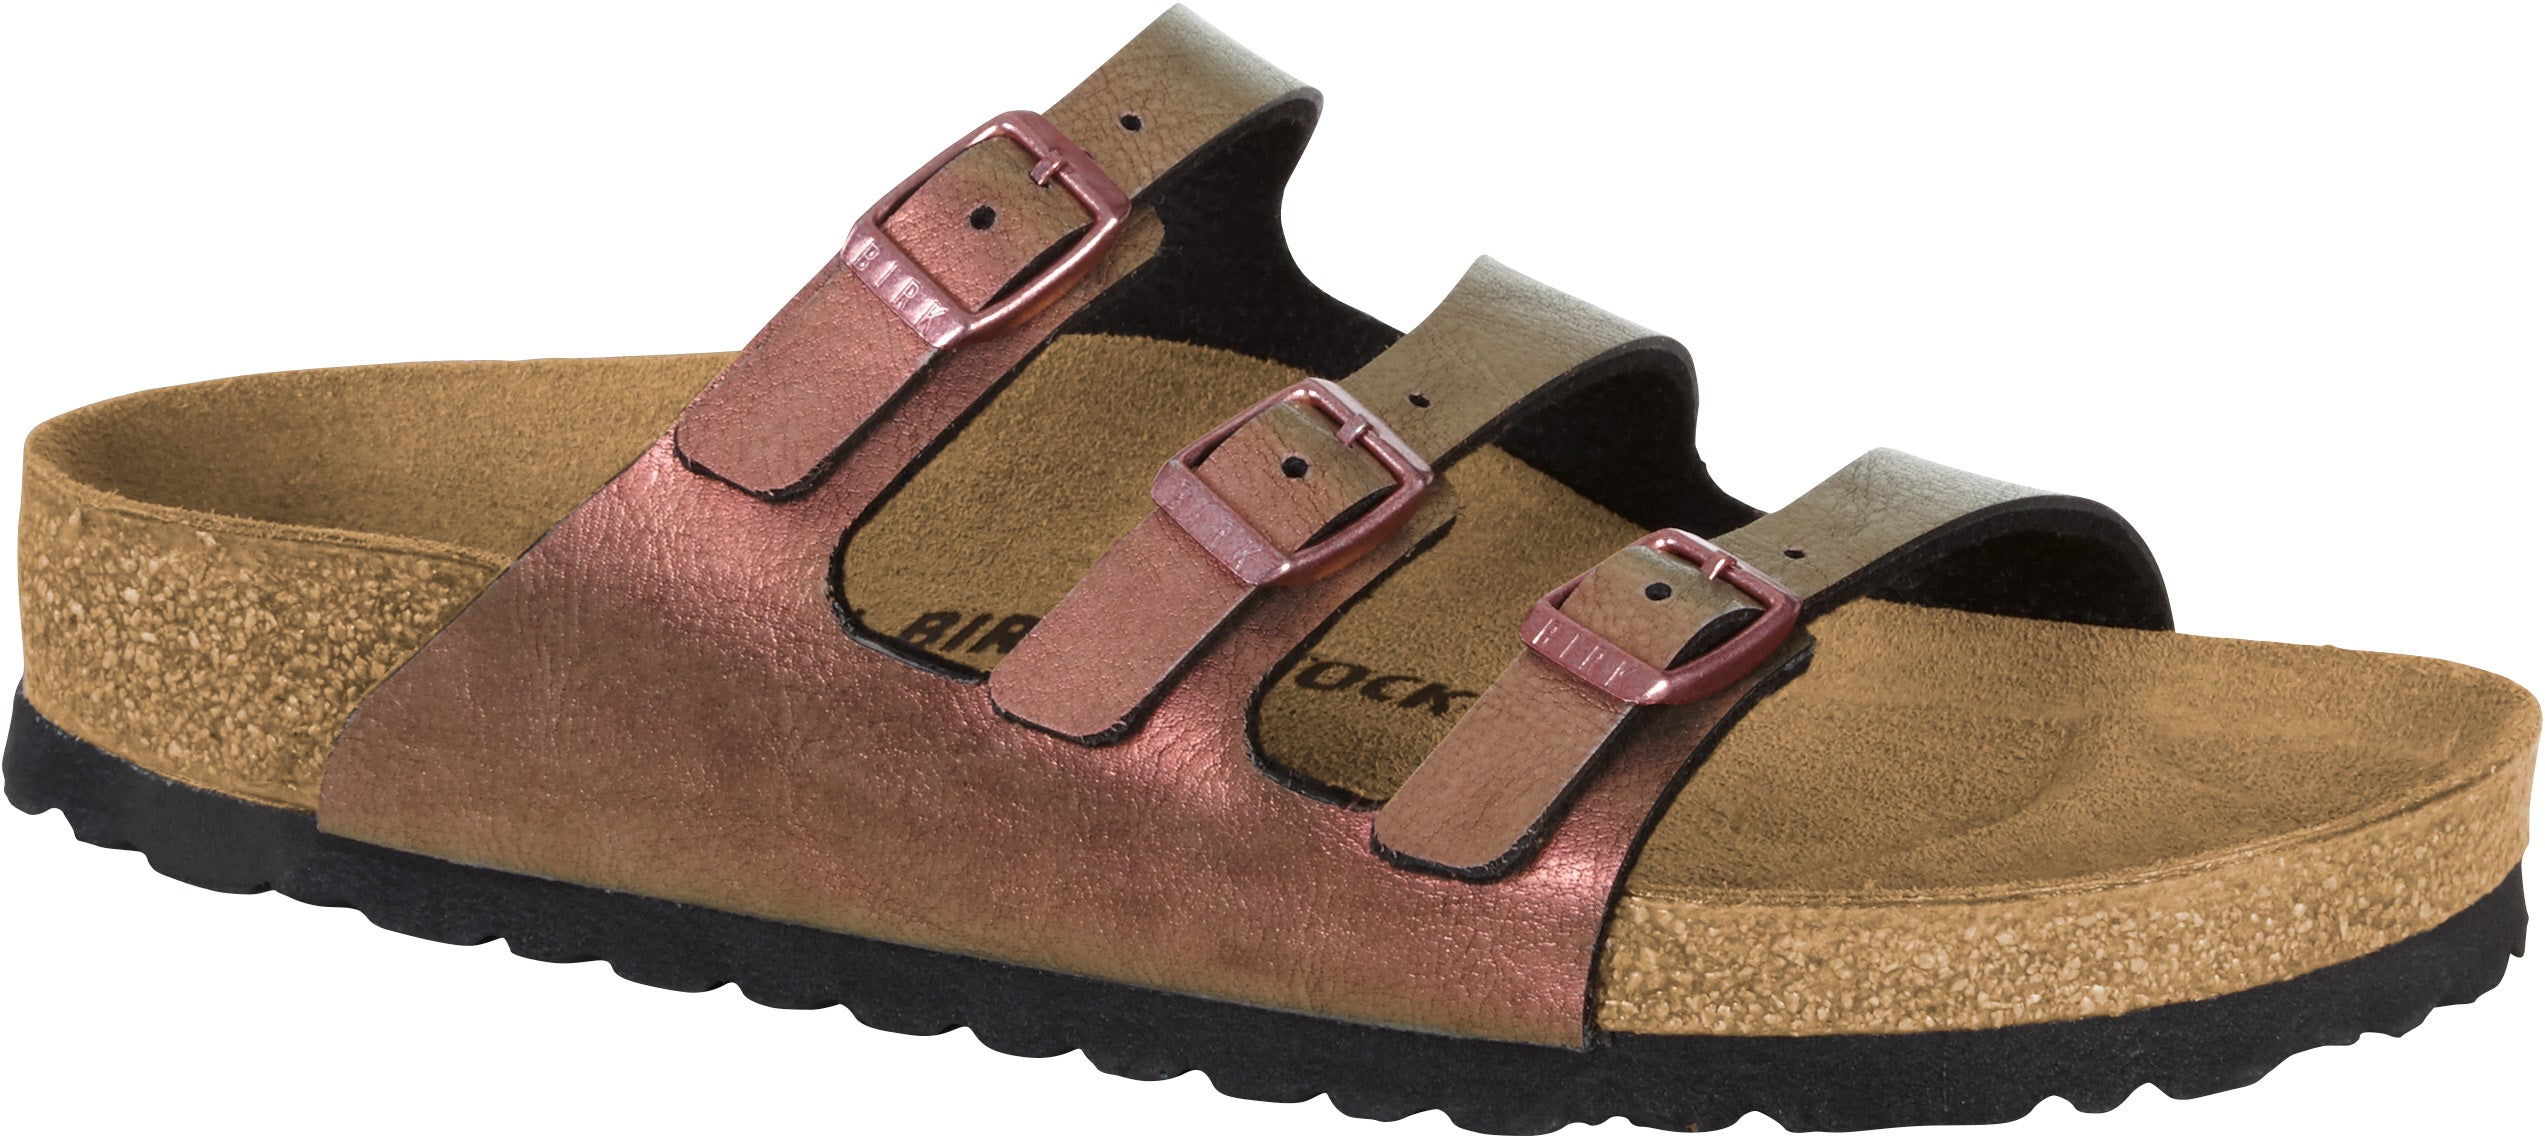 ff48de19cc78 Florida - Gem Red Graceful Birko-Flor. Style Nr   1010954. Classic  Birkenstock comfort with 3 adjustable narrow straps.